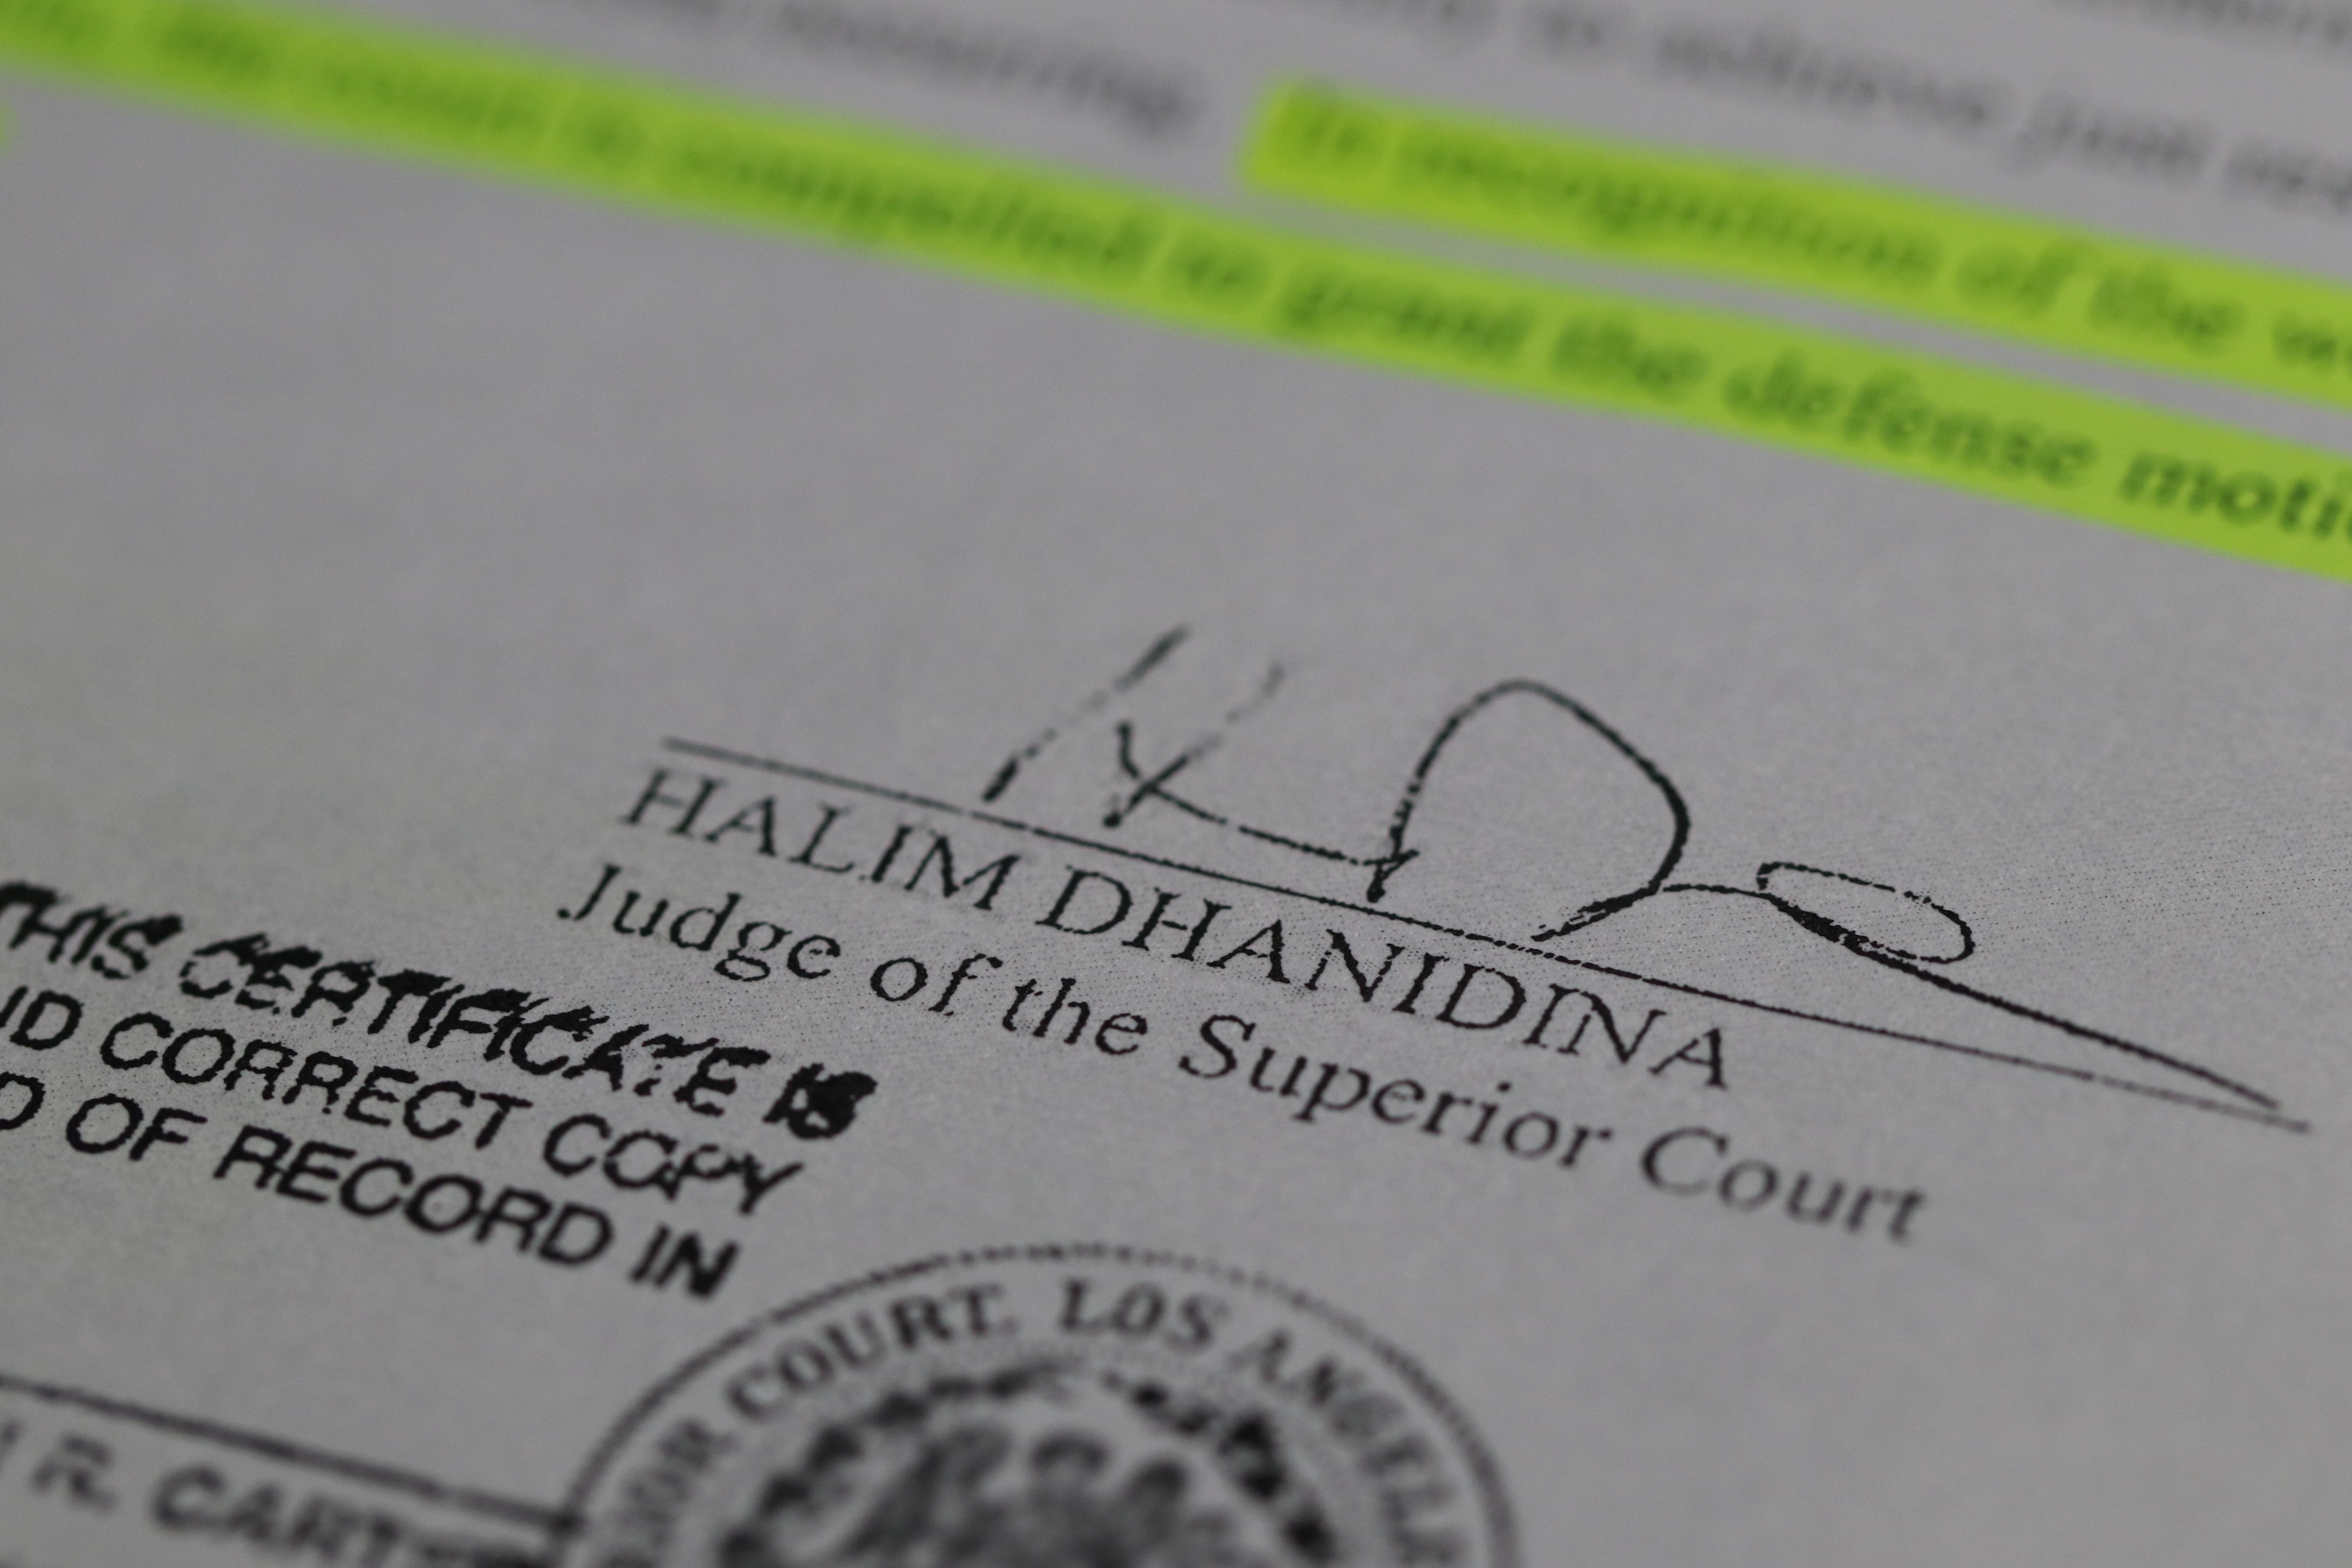 The signature of Los Angeles County Superior Court Justice Halim Dhanidina, who ruled in April 2016 that Long Beach resident Rory Moroney's 2014 arrest was discriminatory and unconstitutional. (Connor Richards / Peninsula Press)